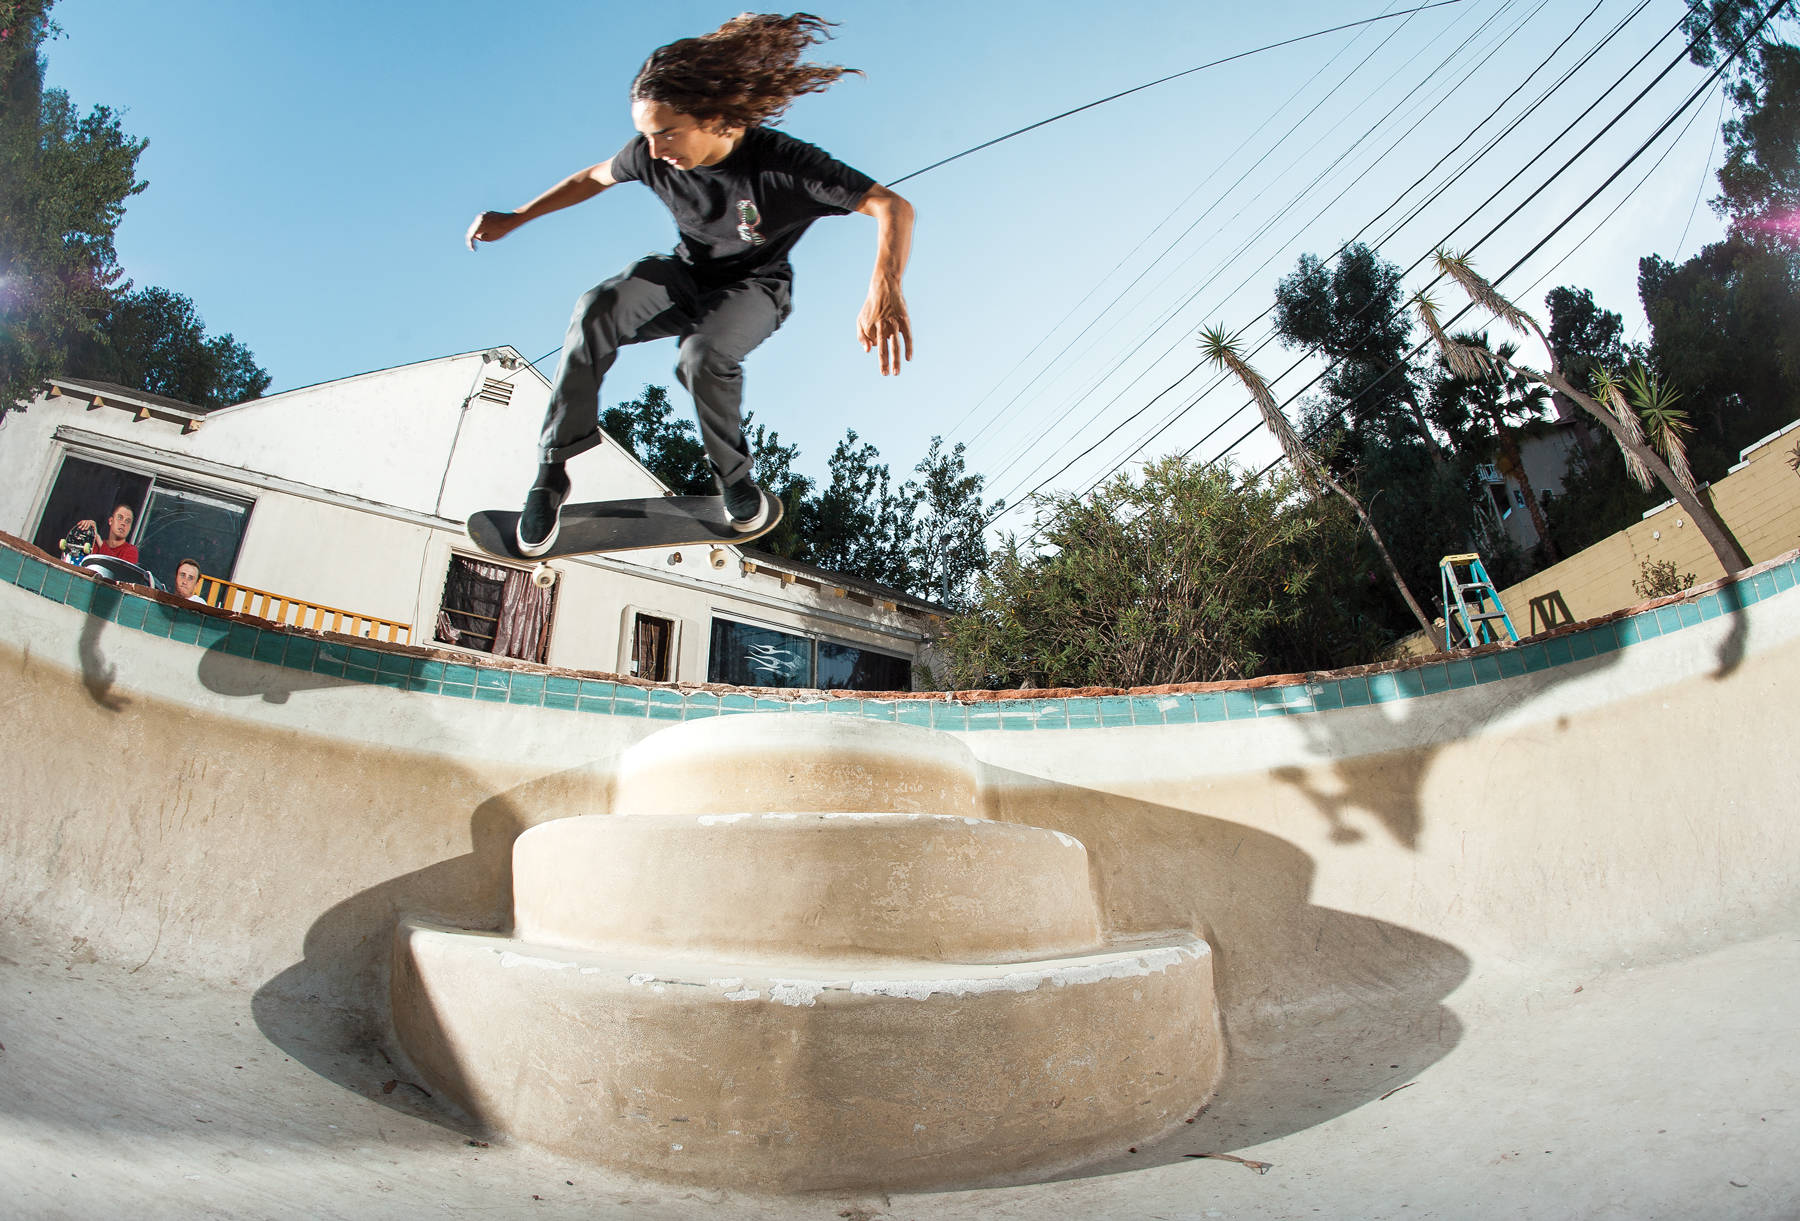 THE NEXT NEW WAVE -- Patrick Ryan - Berrics Magazine